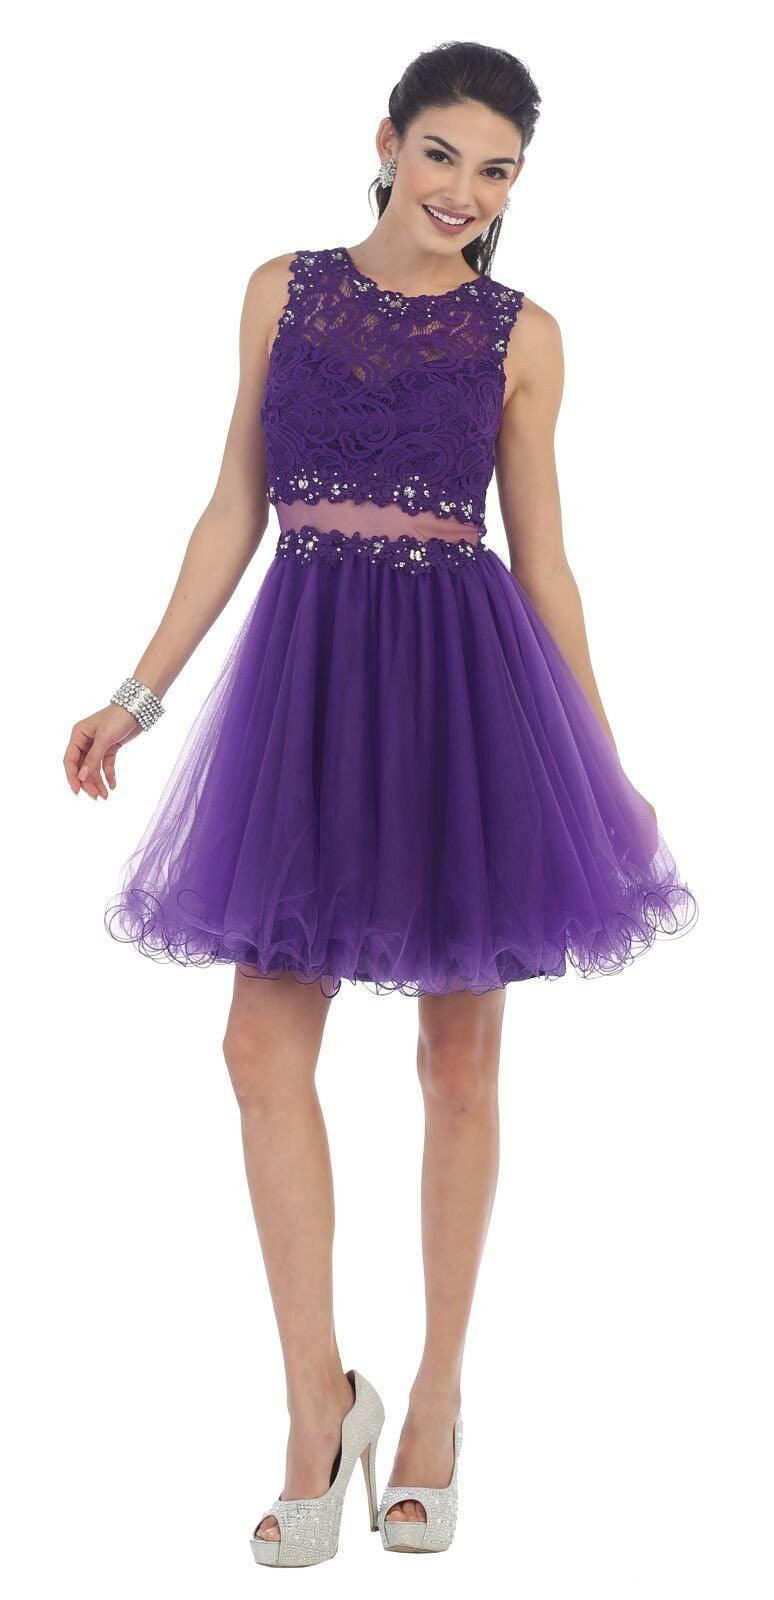 Short Prom Formal Homecoming Dress - The Dress Outlet Purple